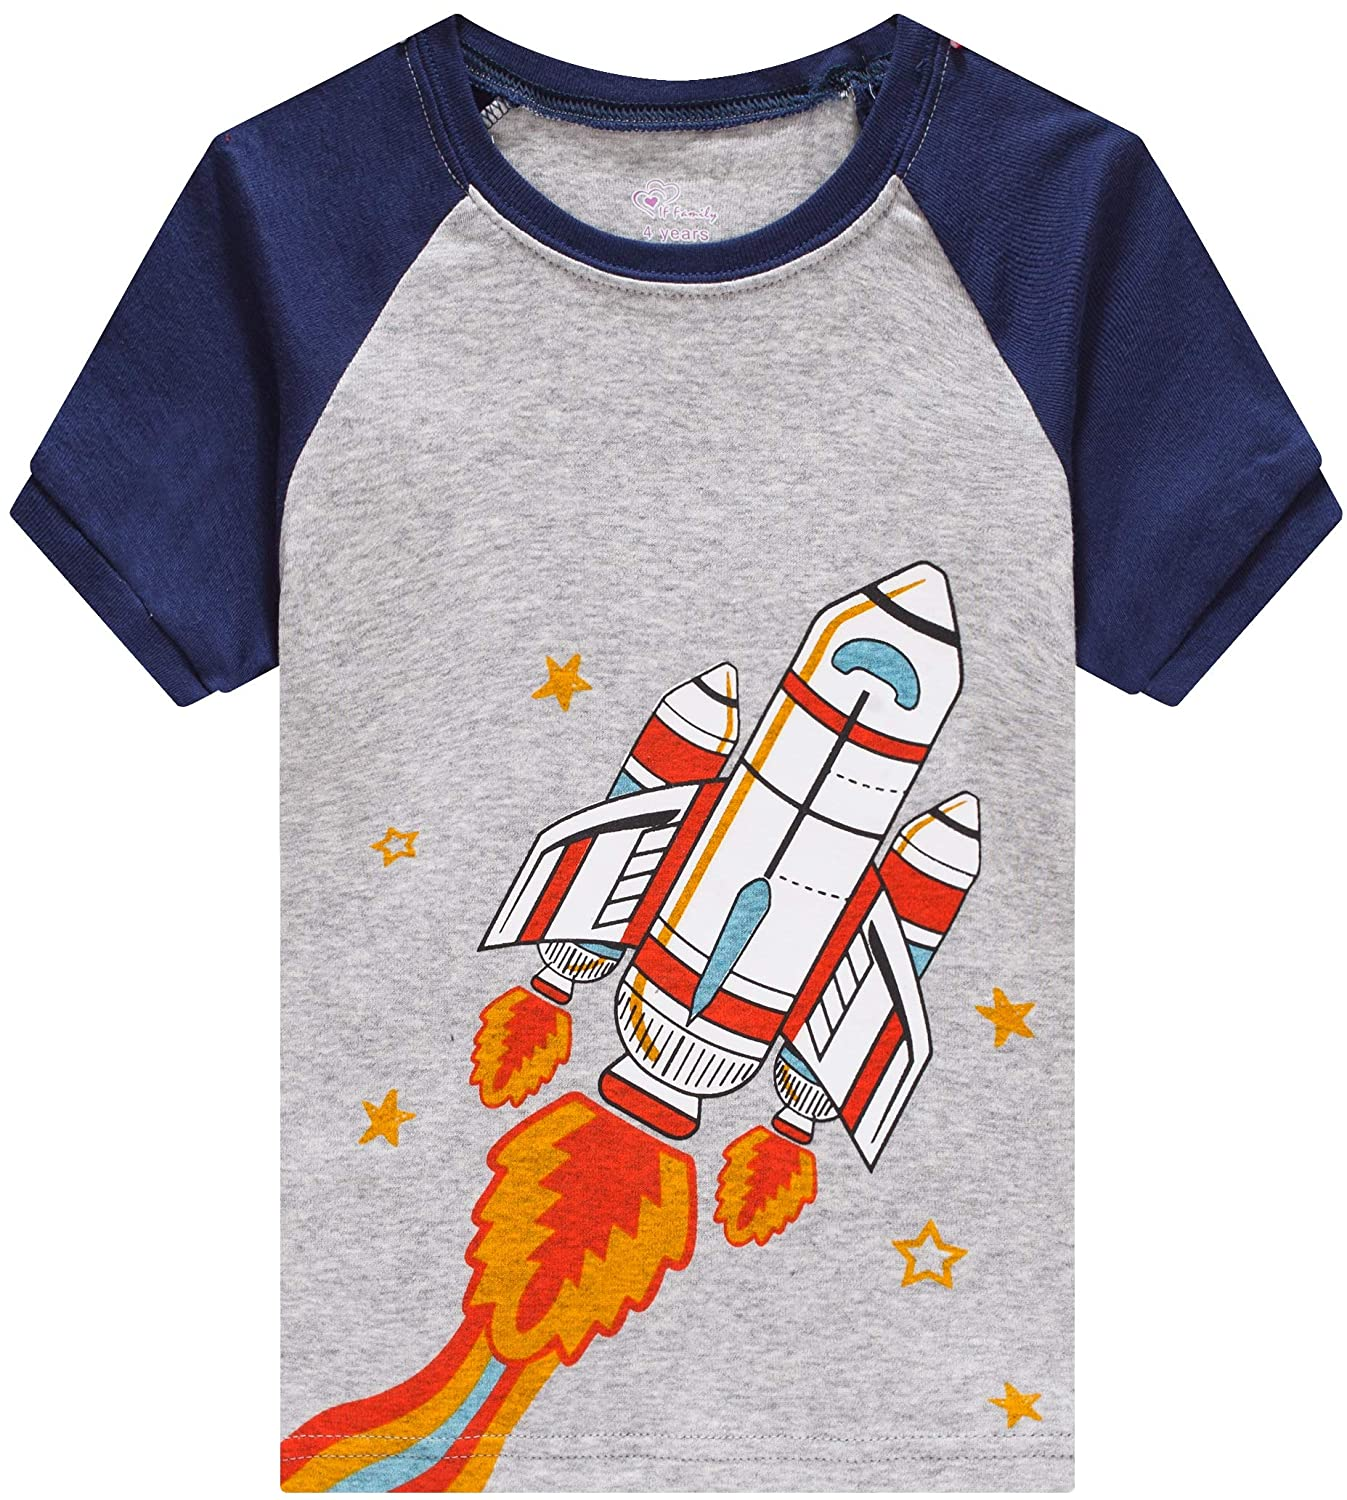 IF Family Pajamas for Boys Baby Summer Clothes Toddler Kids Space PJs Short Sets Girls Cotton Sleepwear